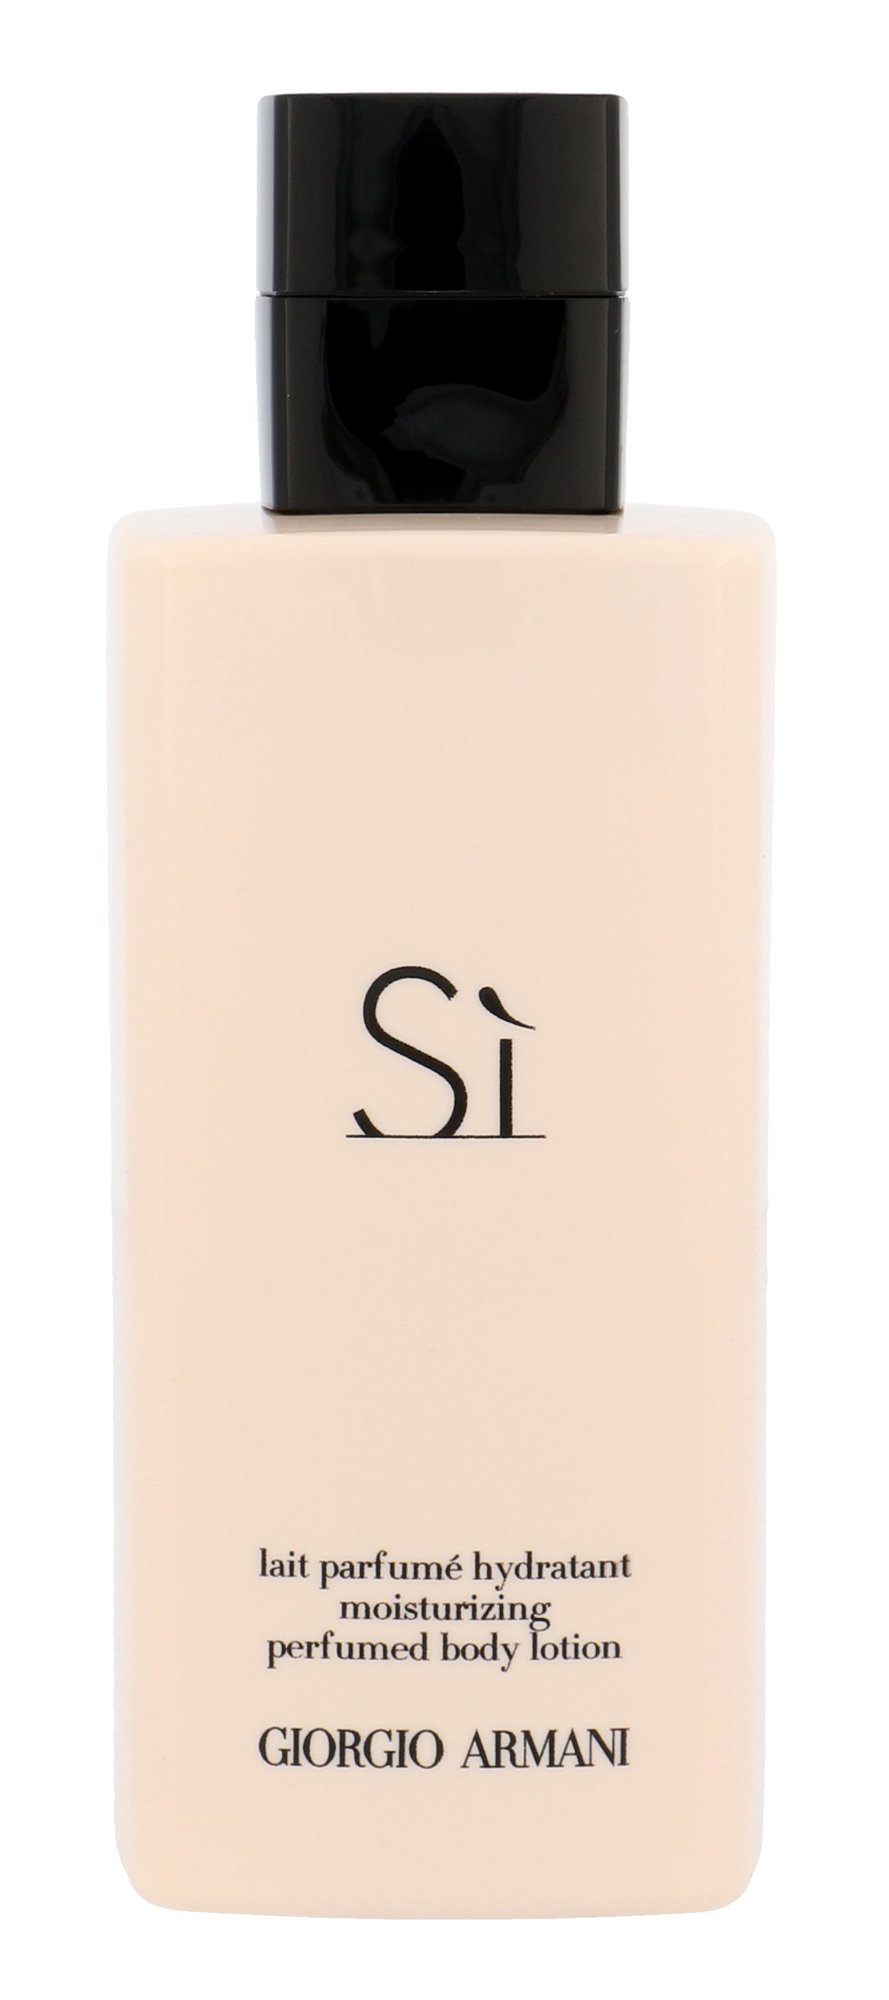 Giorgio Armani Si Body lotion 200ml